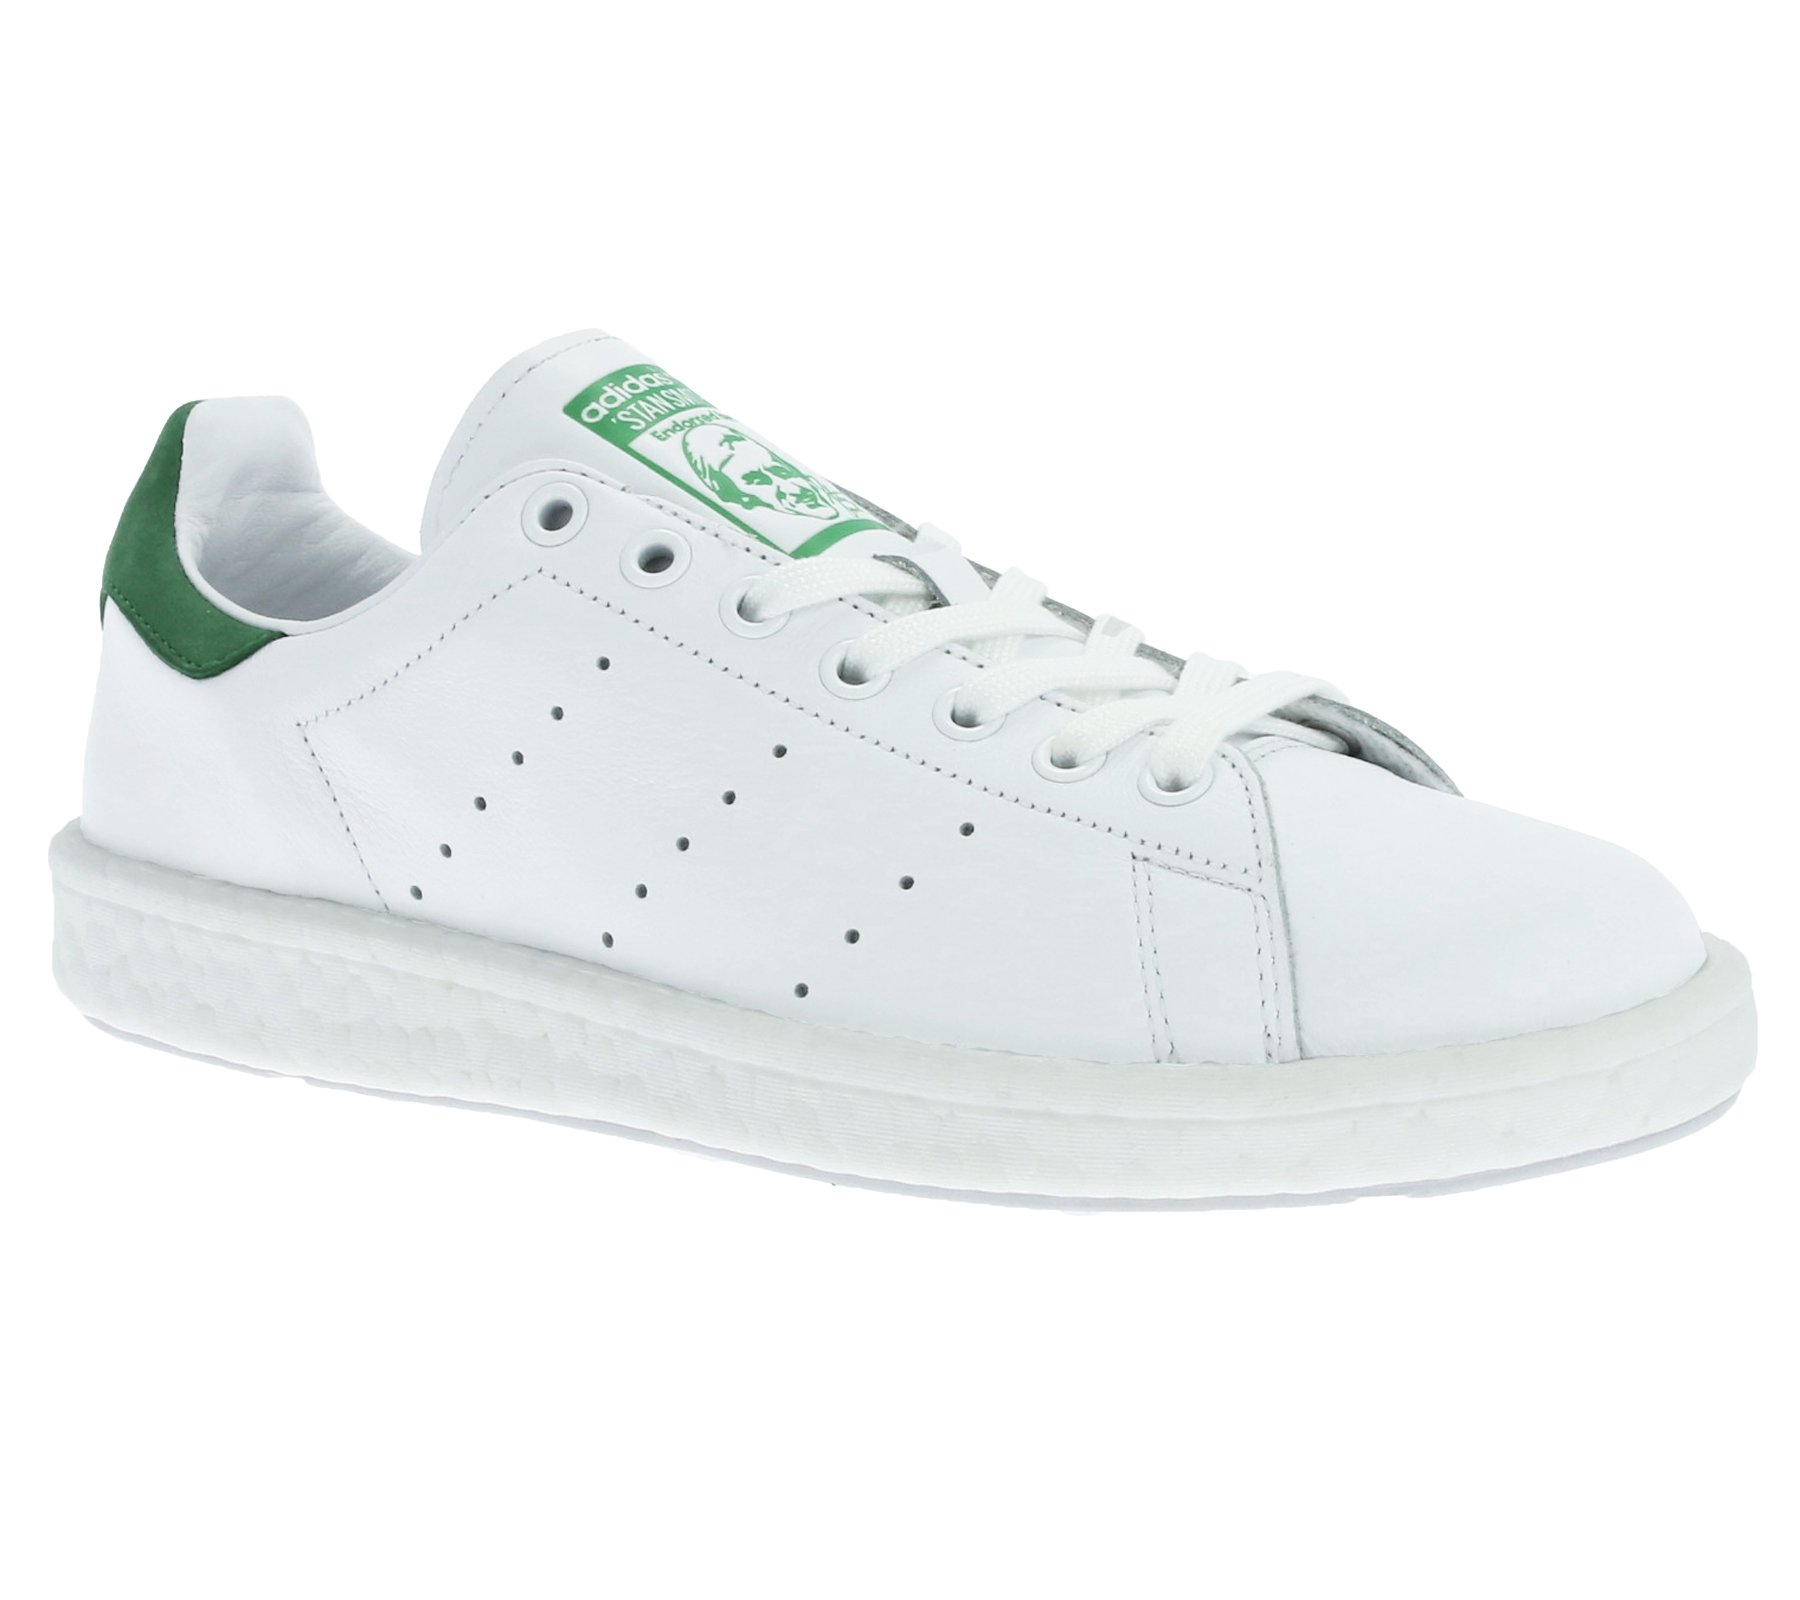 Adidas Schuhe Stan Smith Boost Herren footwear white-footwear white-green (BB0008) 41 1/3 weiss